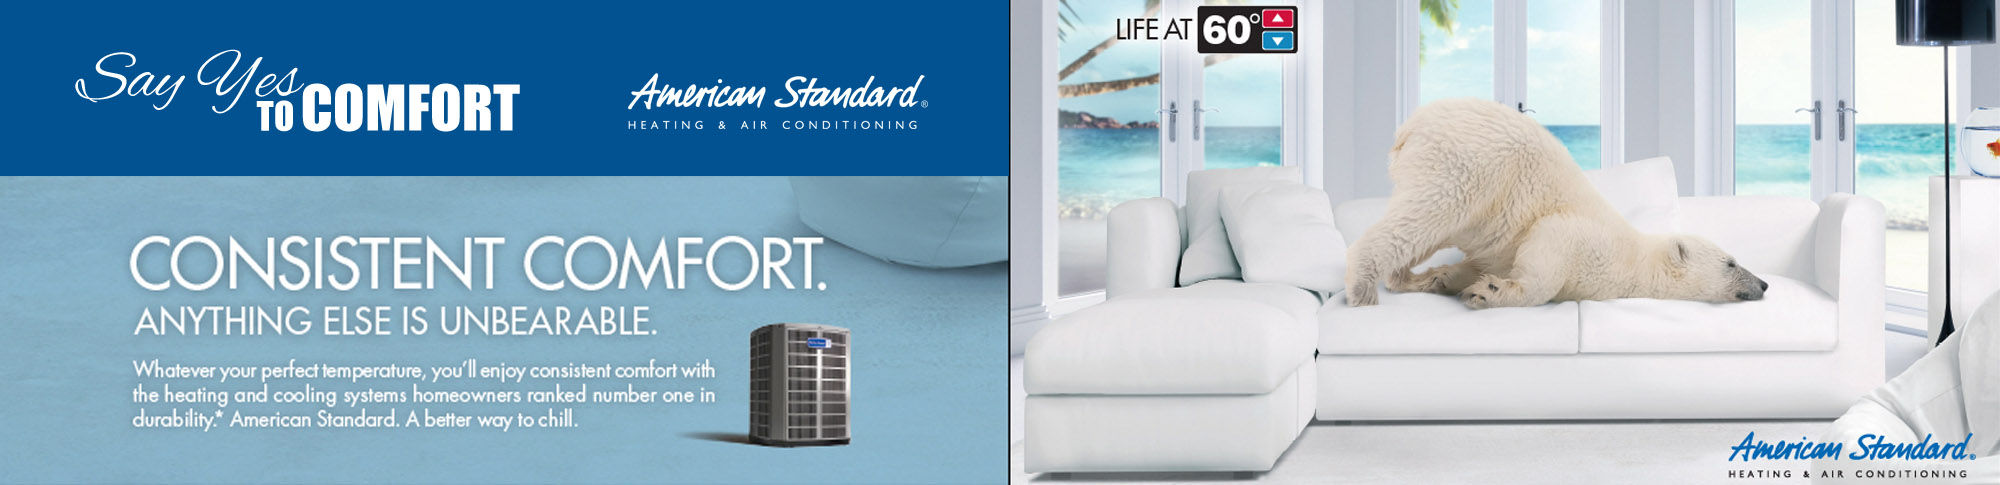 For consistent comfort, install a new American Standard Air Conditioner